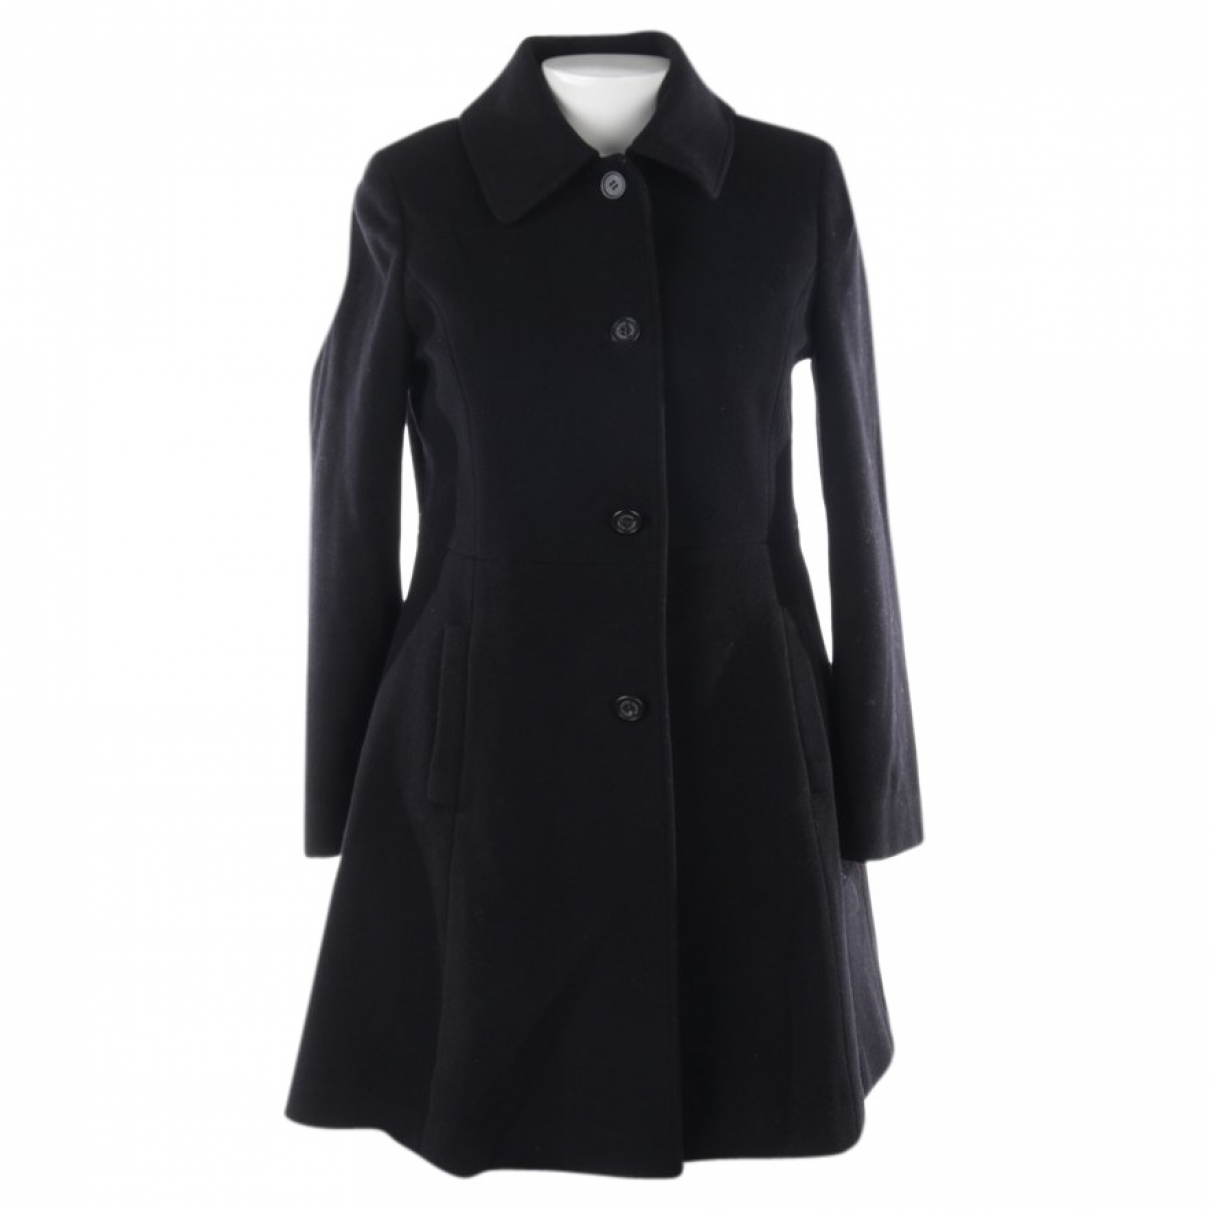 Lauren Ralph Lauren \N Black Wool jacket for Women 40 FR